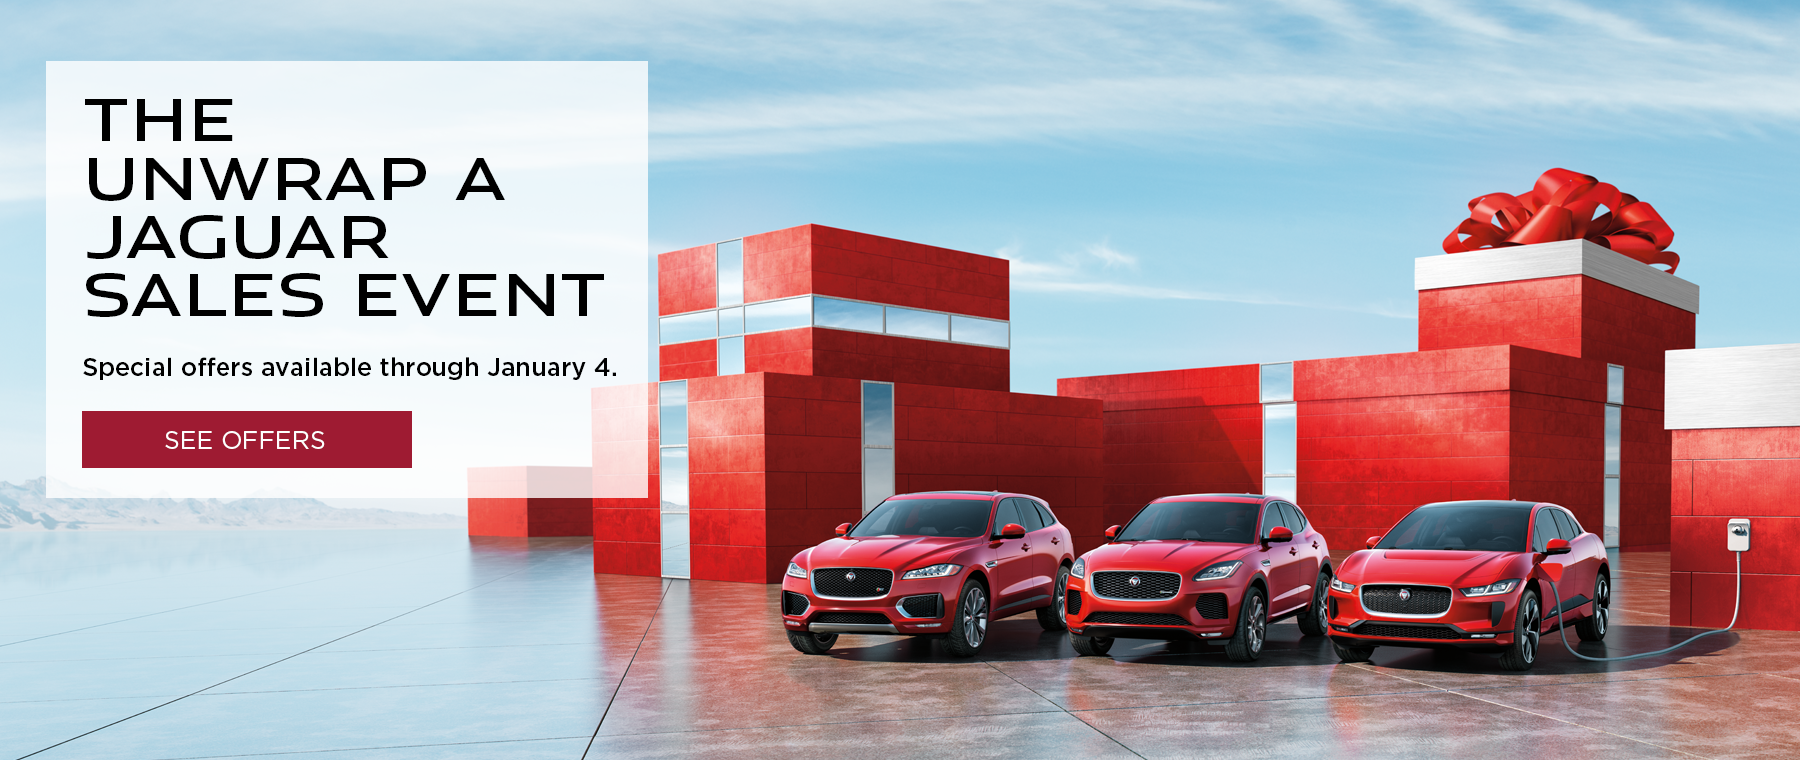 2020 Unwrap a Jaguar Sales Event